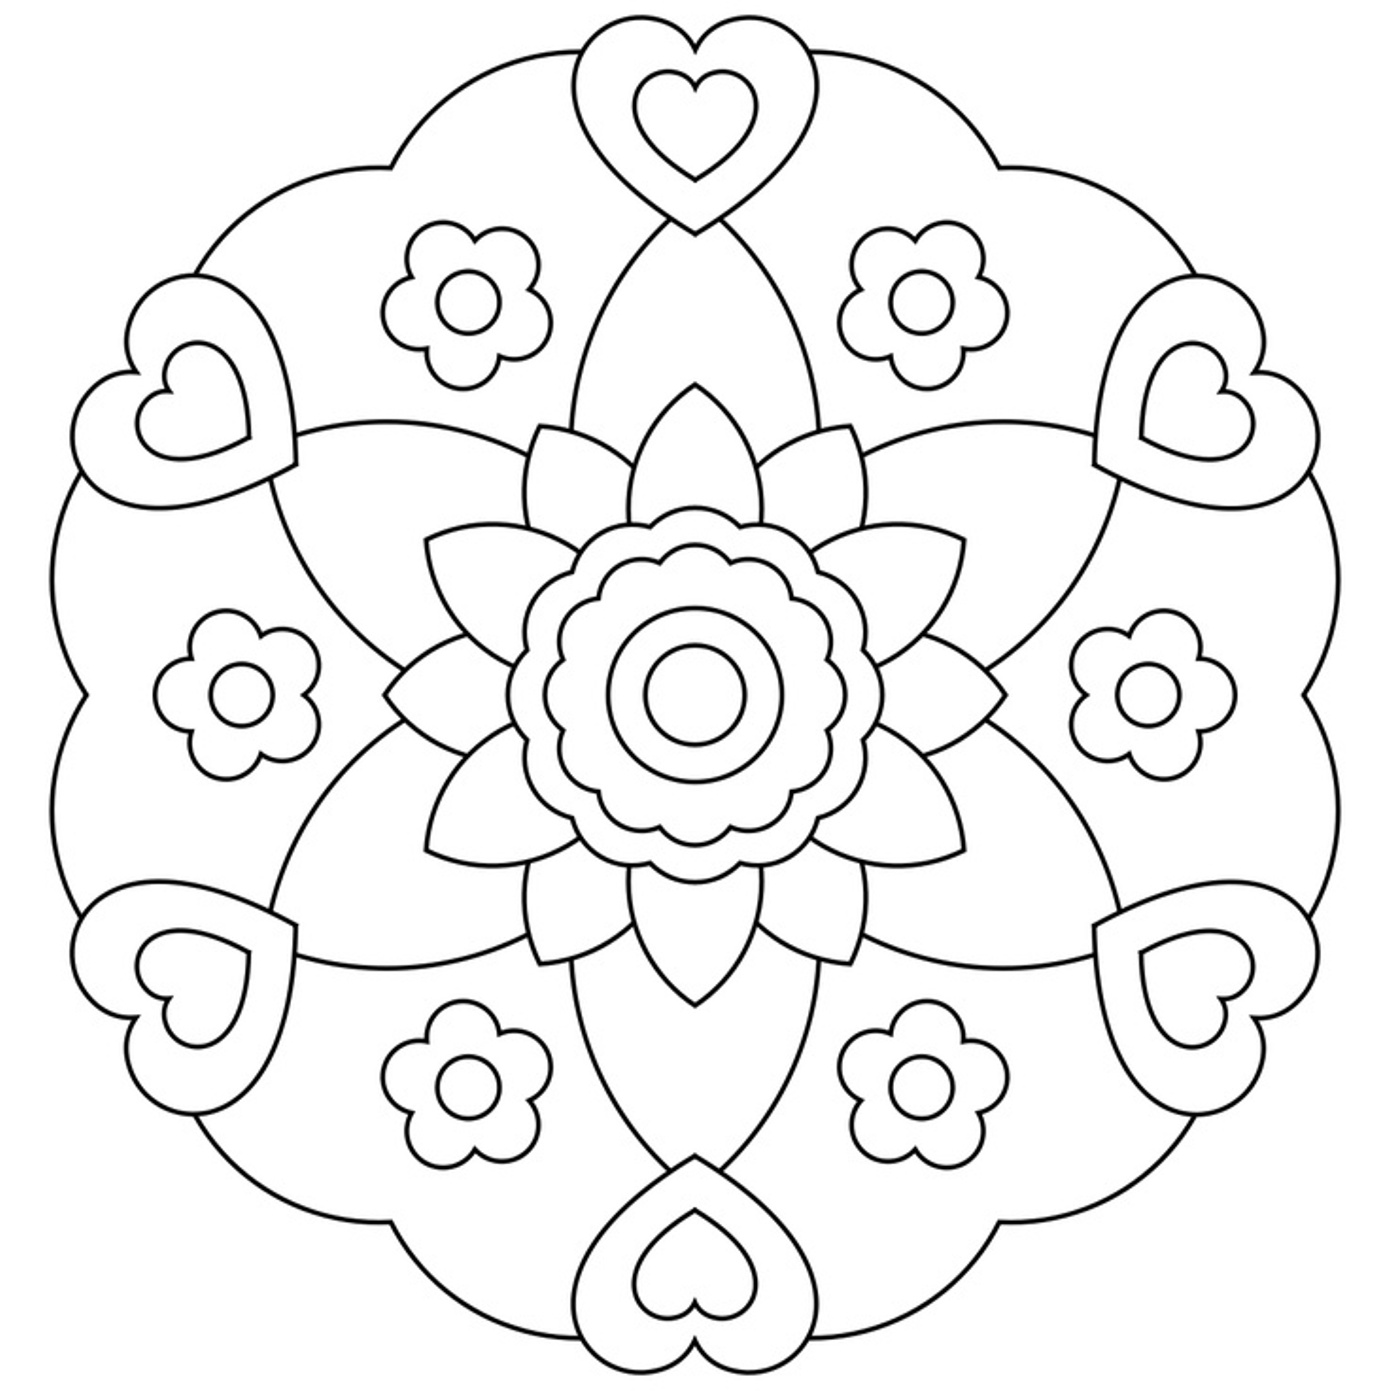 Best Free Easy Flower Mandala Designs Coloring Pages ...